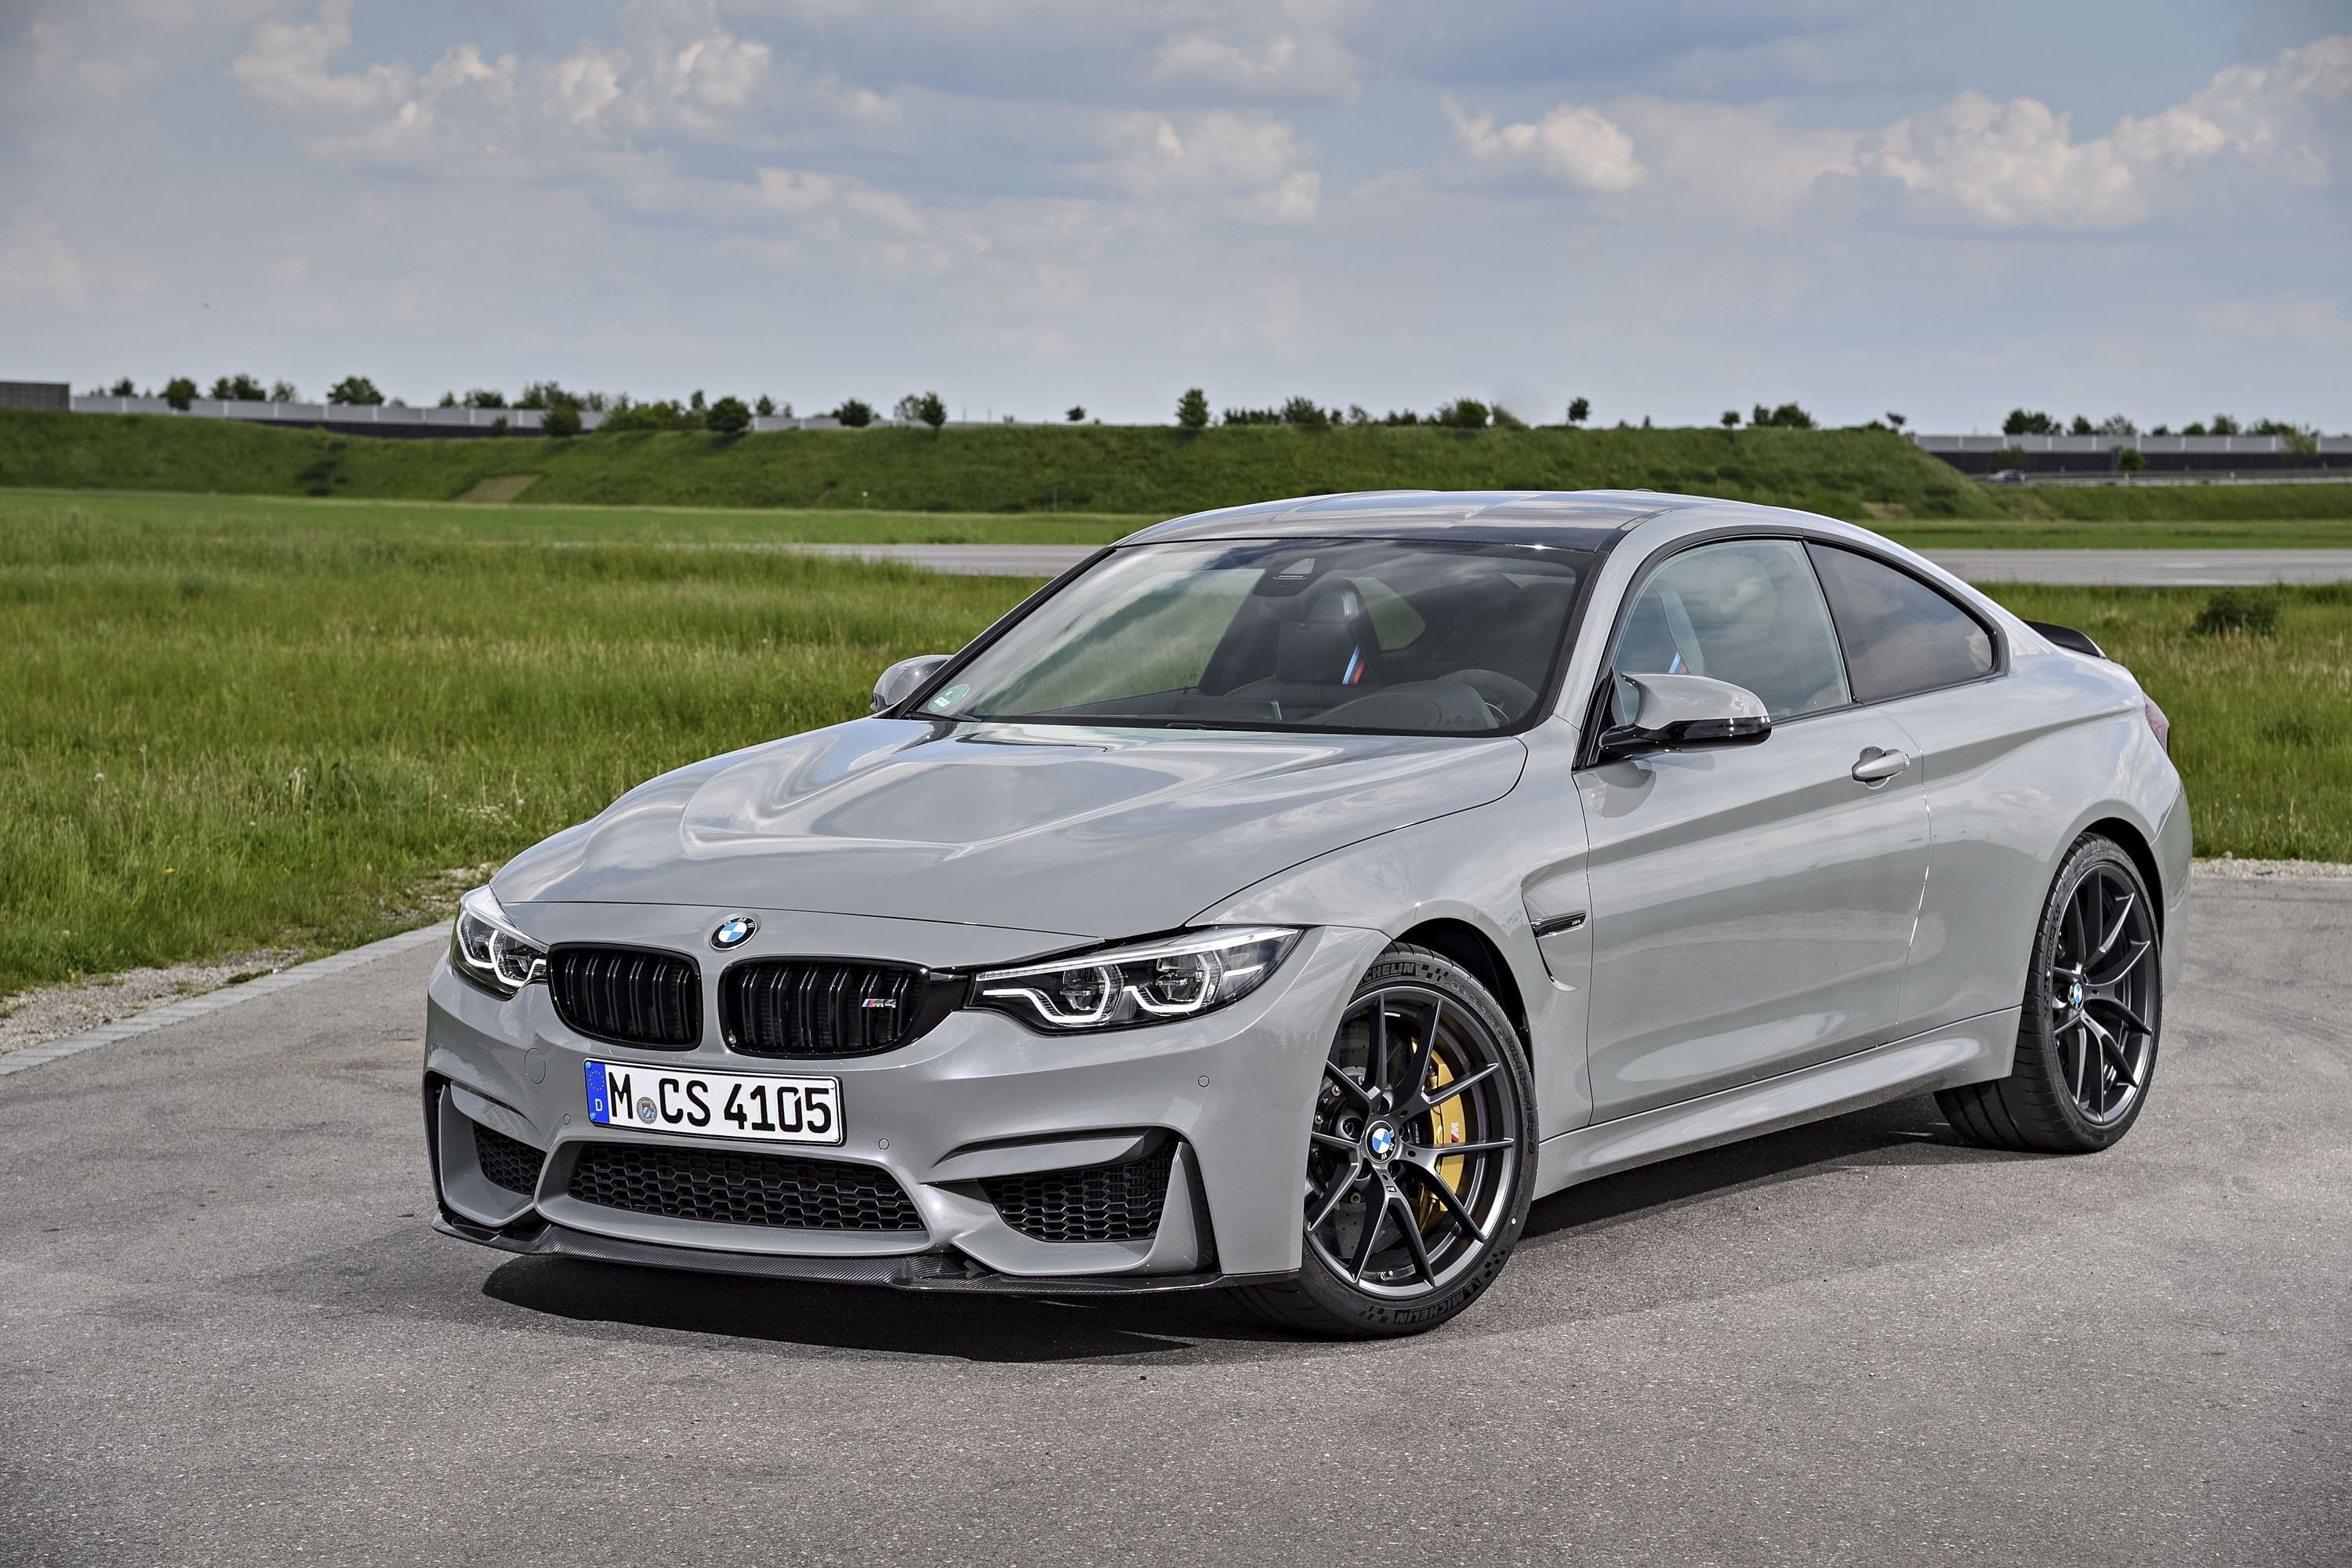 2020 Bmw M4 Colors Cakhd Cakhd The Latest Information About New Cars Release Date Redesign And Rumors Our Coverage Al Bmw M4 Bmw Models Bmw Classic Cars